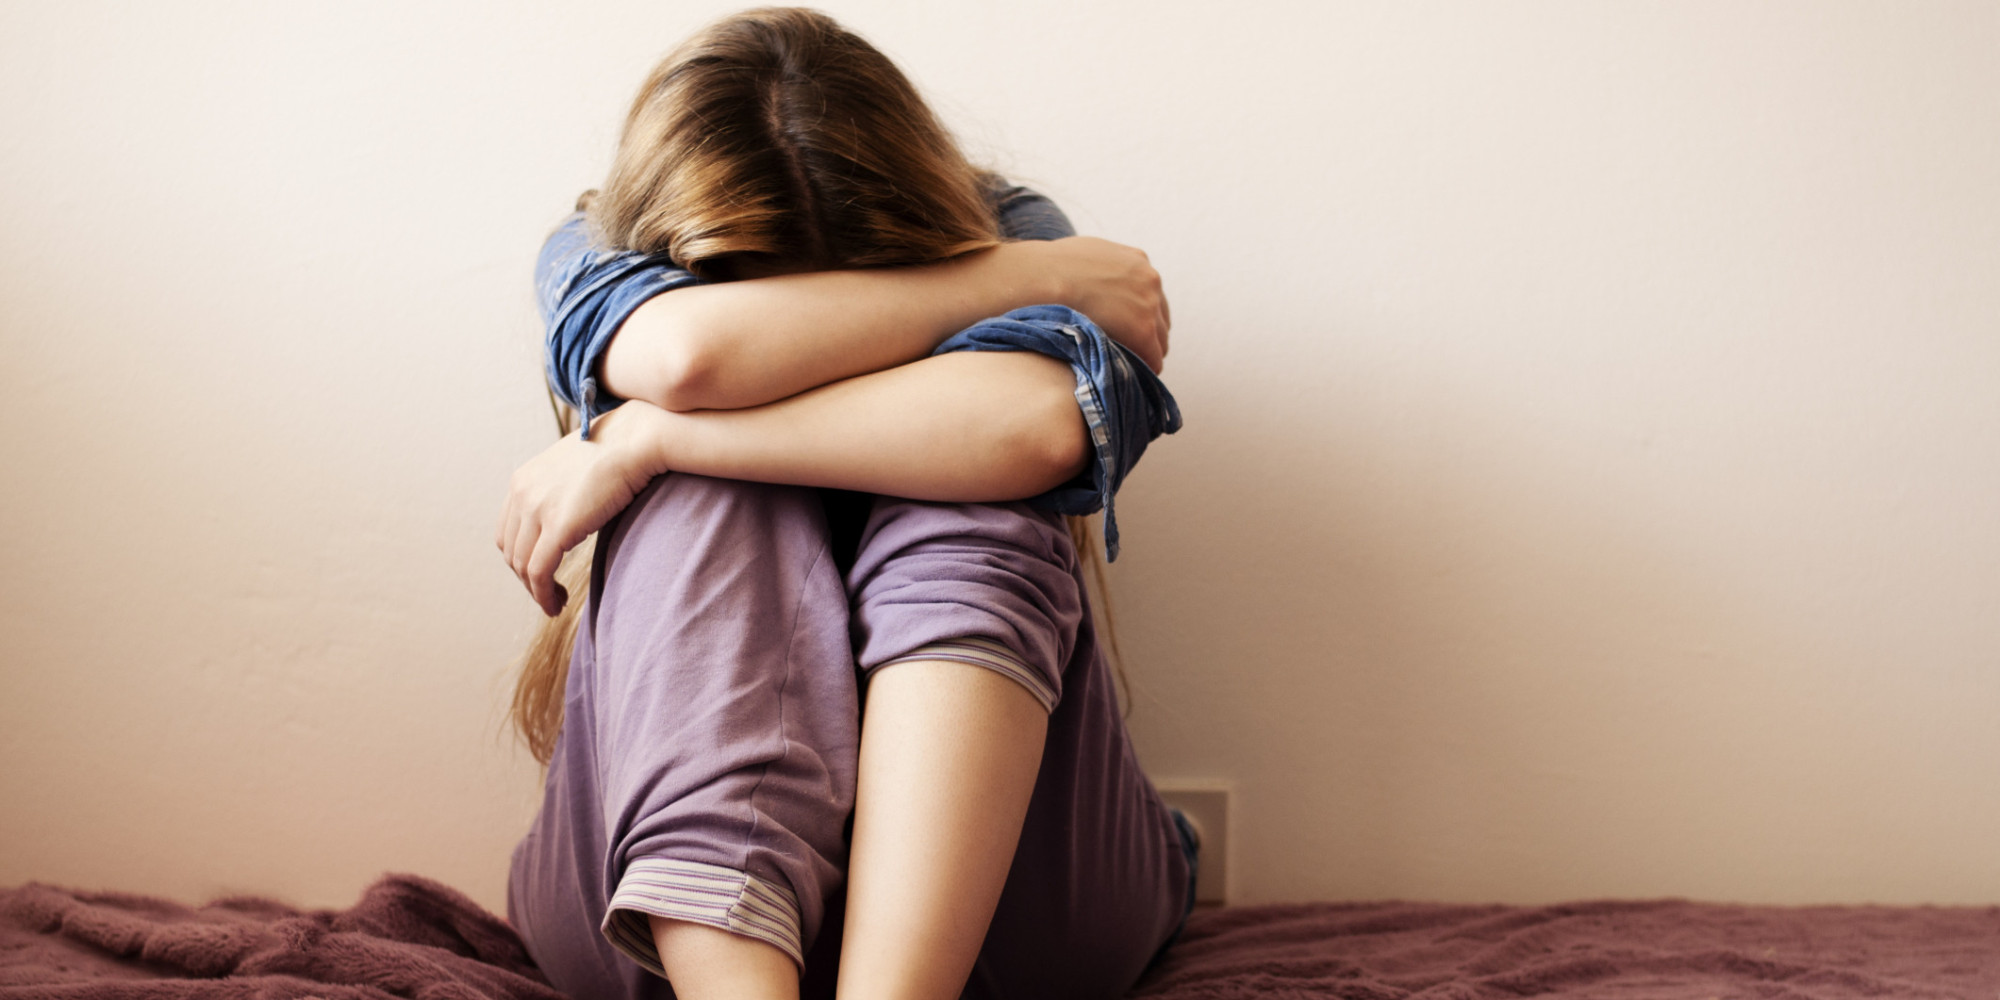 10 Causes of Depression You Should Know About